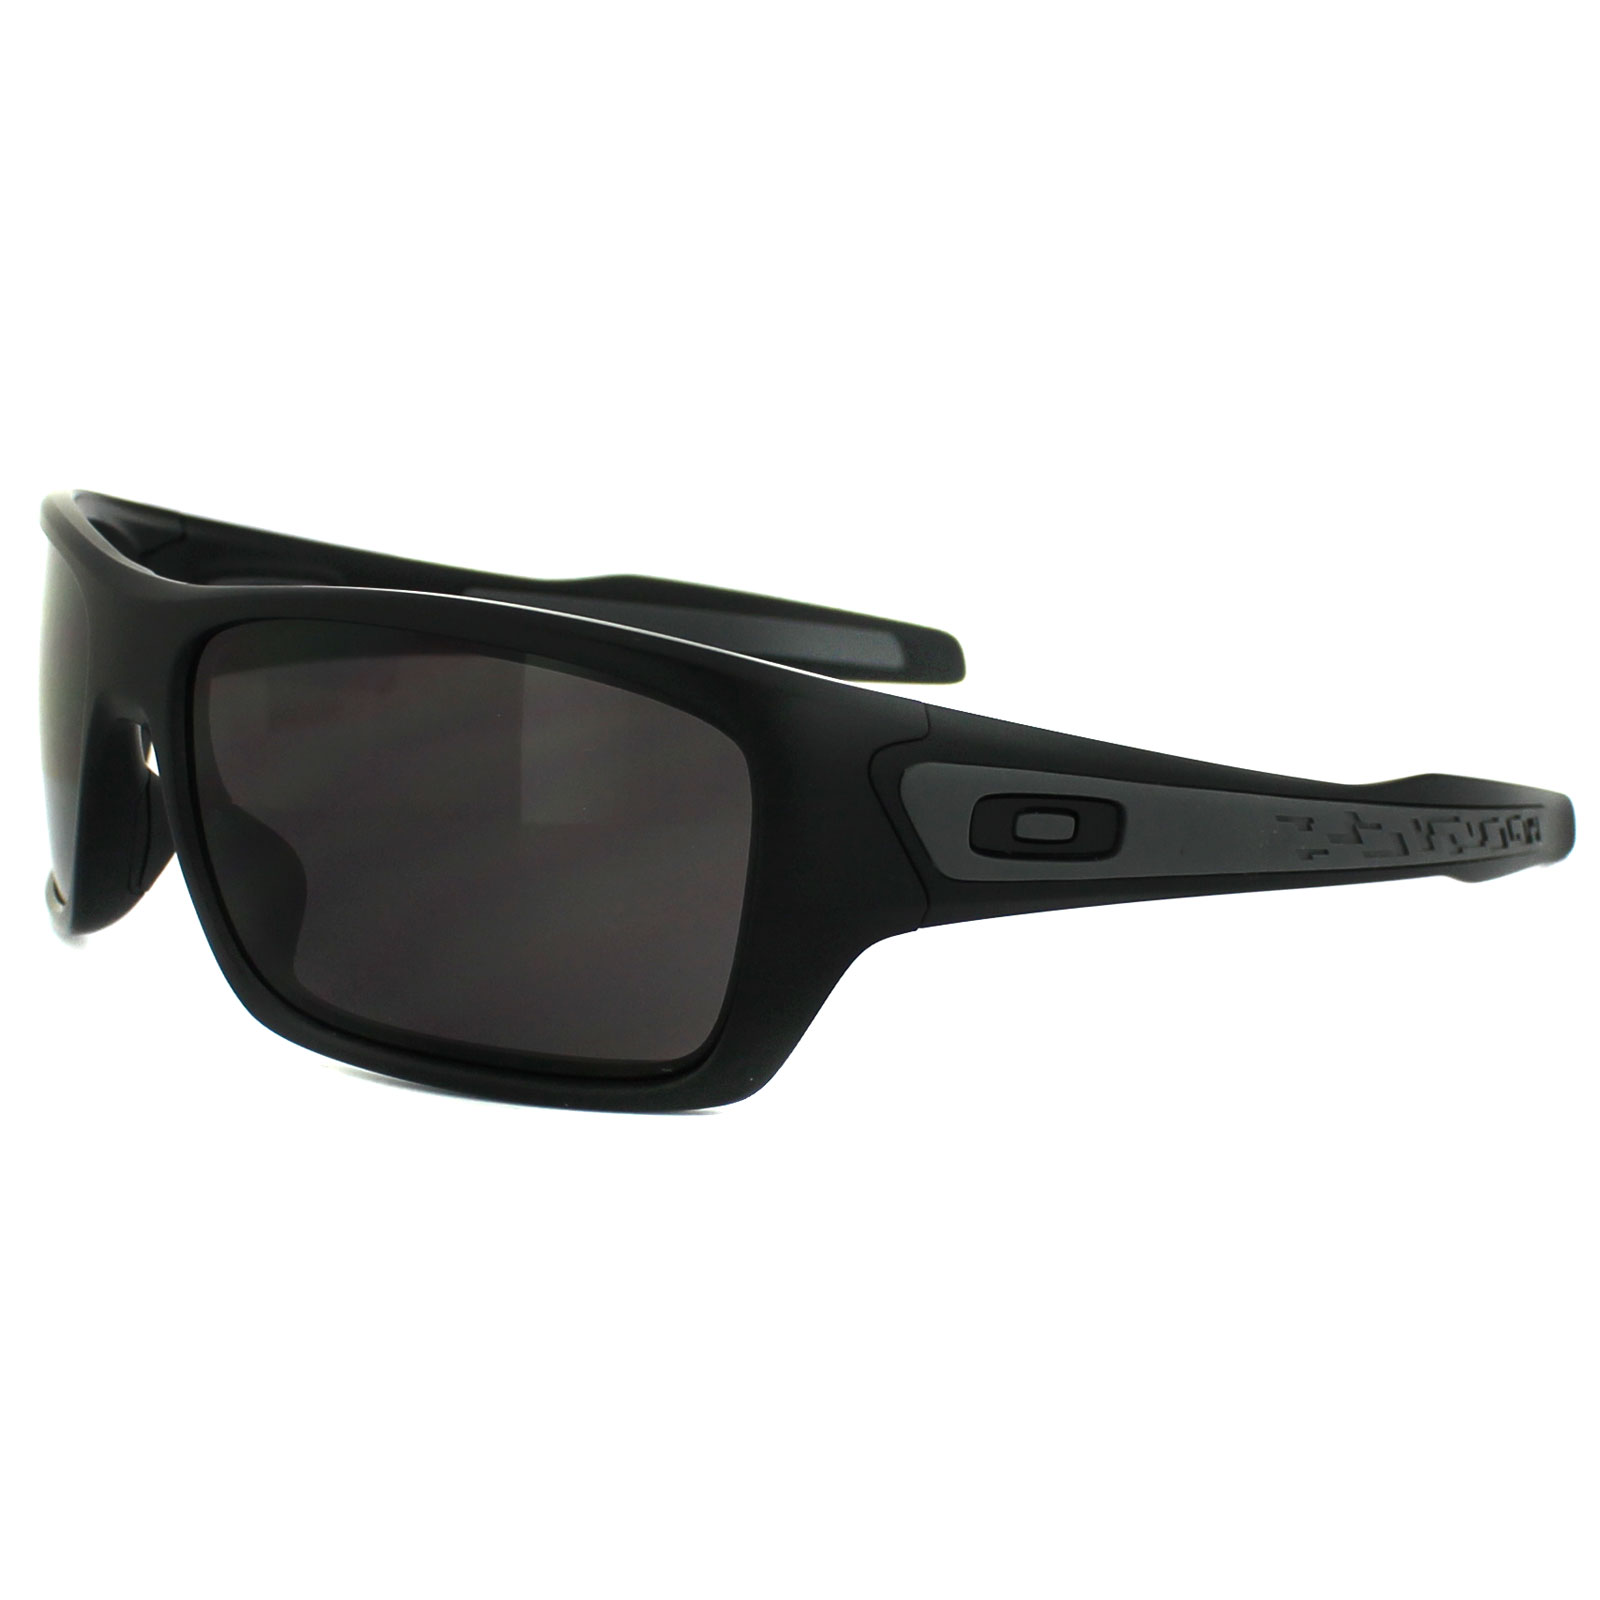 styse Cheap Oakley Sunglasses - Discounted Sunglasses